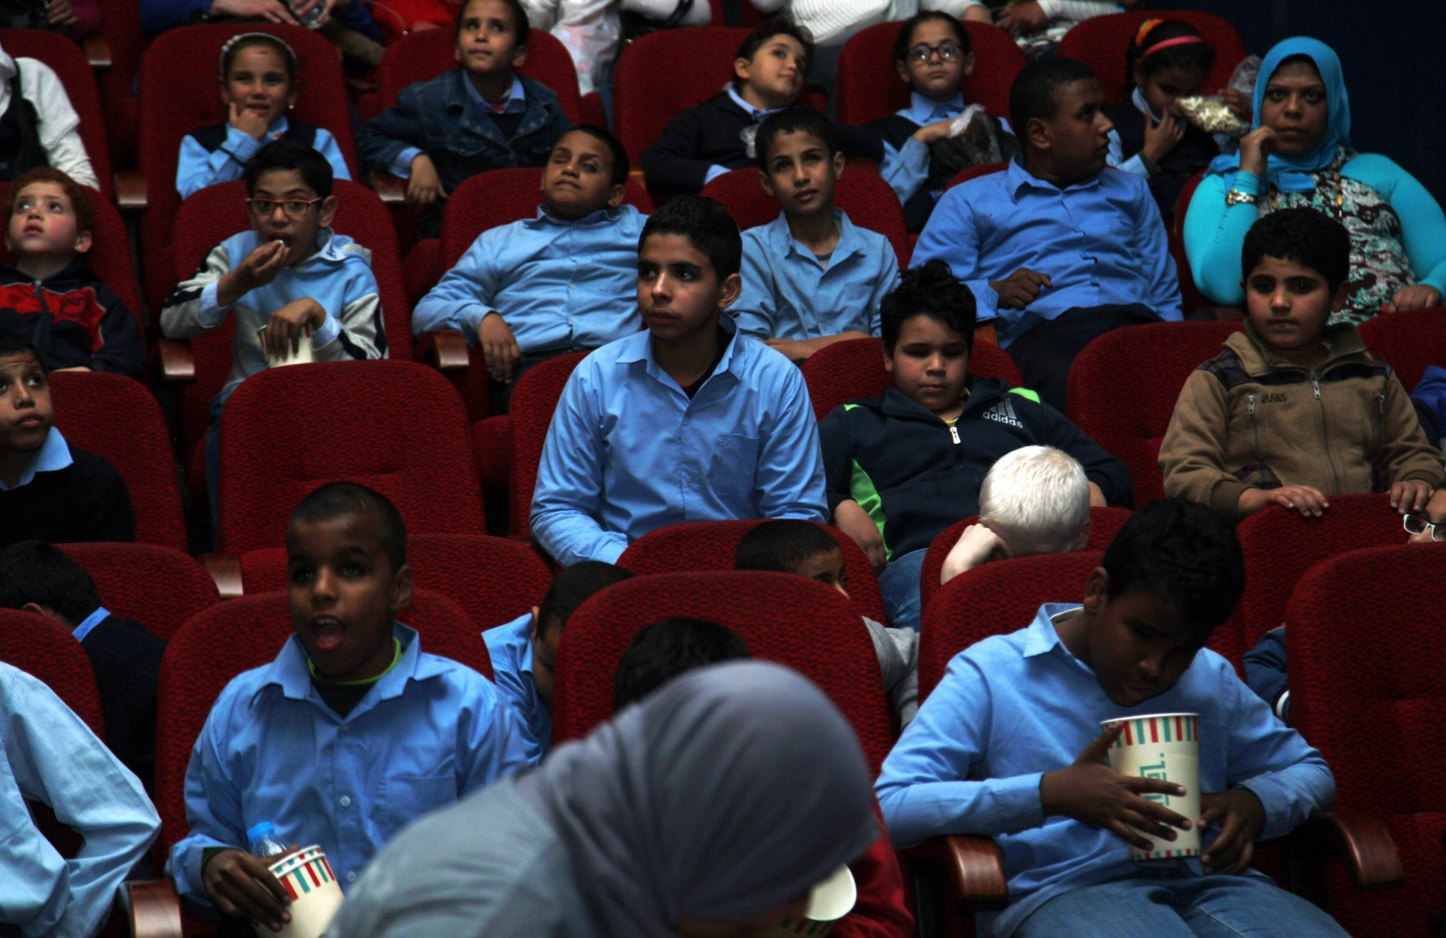 Masreya Media targets children who have never been given the chance to watch an animated movie before. (Photo by Omar Hisham)